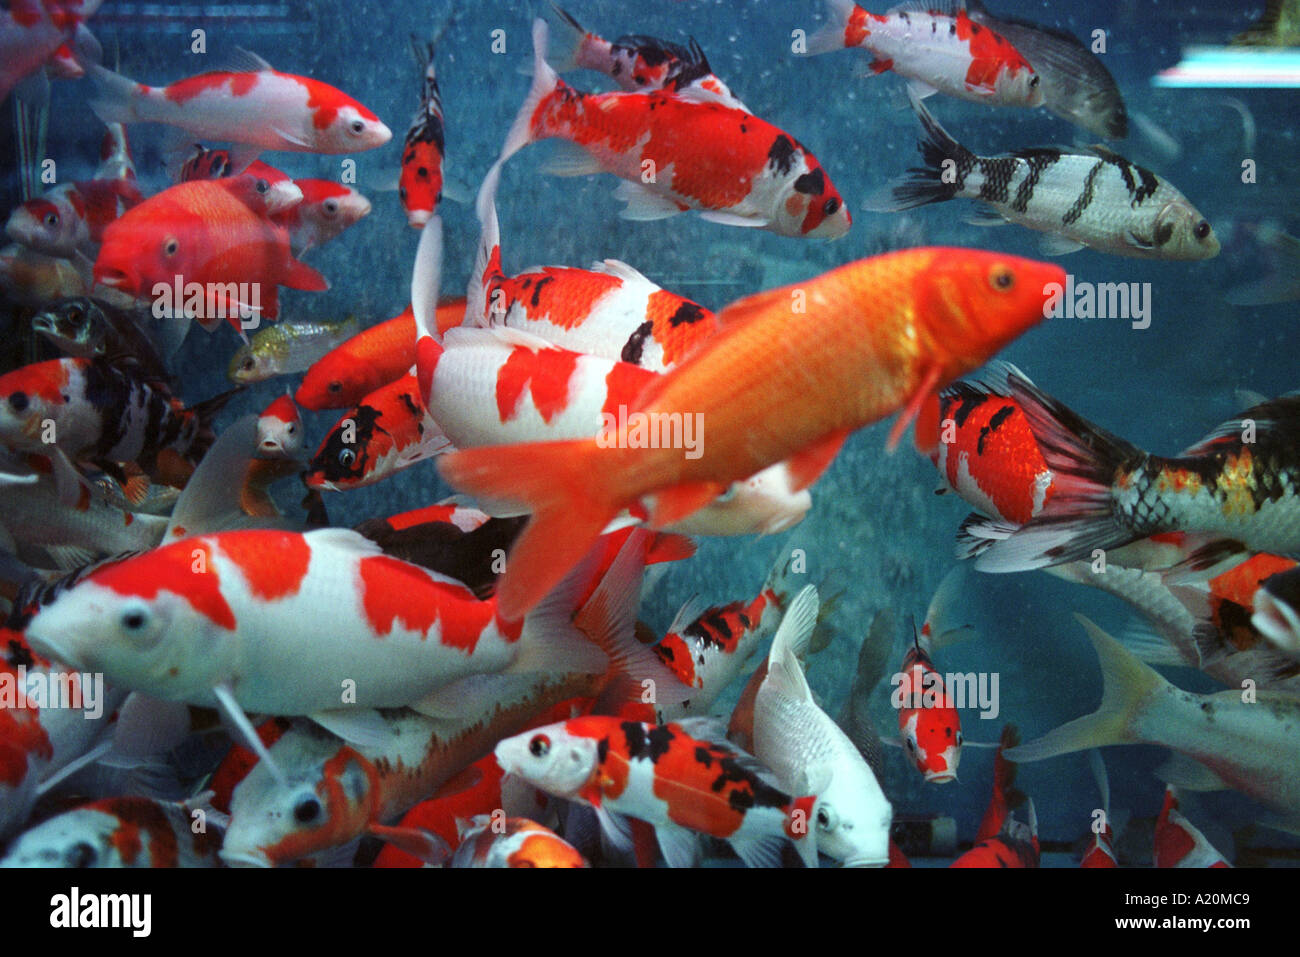 koi carp fish in aquarium